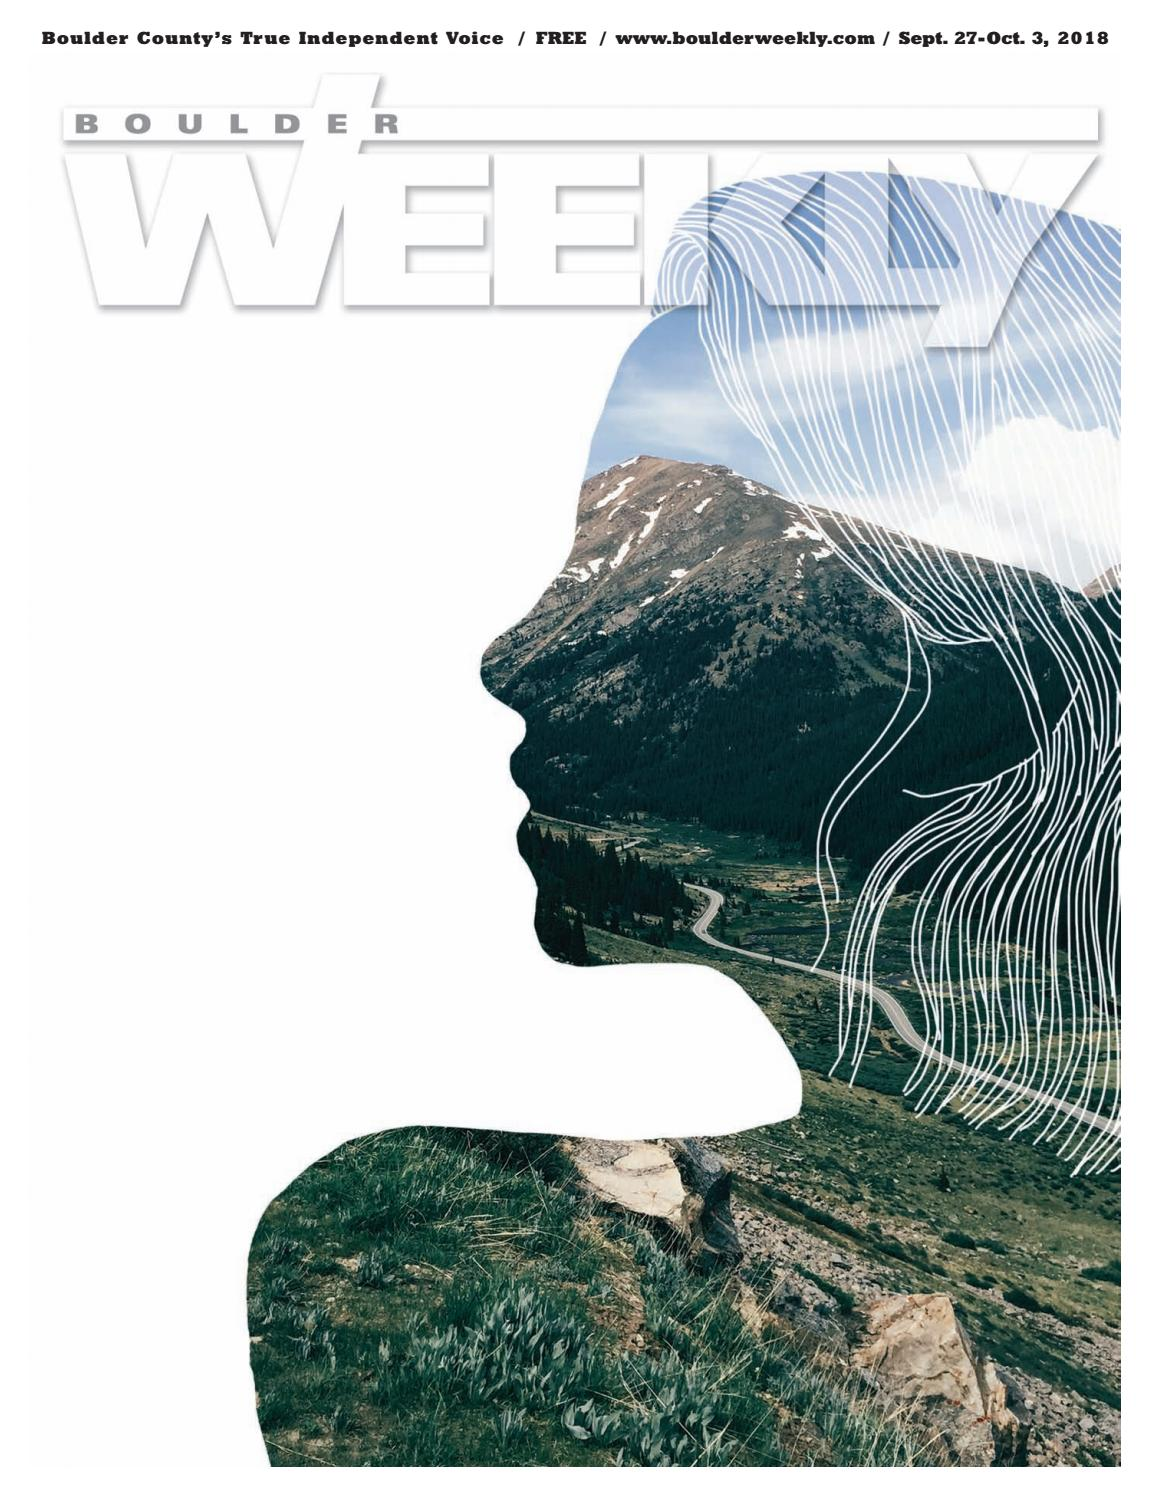 f77569bb7ab9 09.27.18 Boulder Weekly by Boulder Weekly - issuu